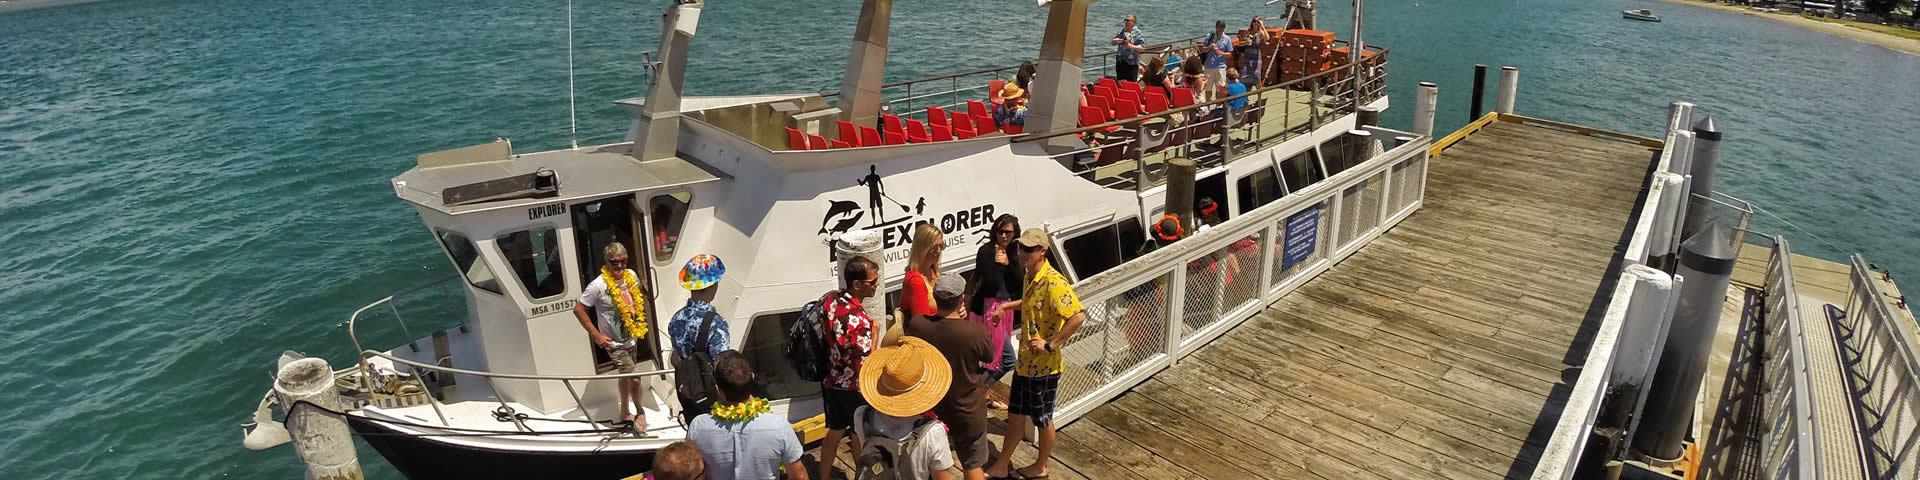 The Bay Explorer, Tauranga's favourite boat